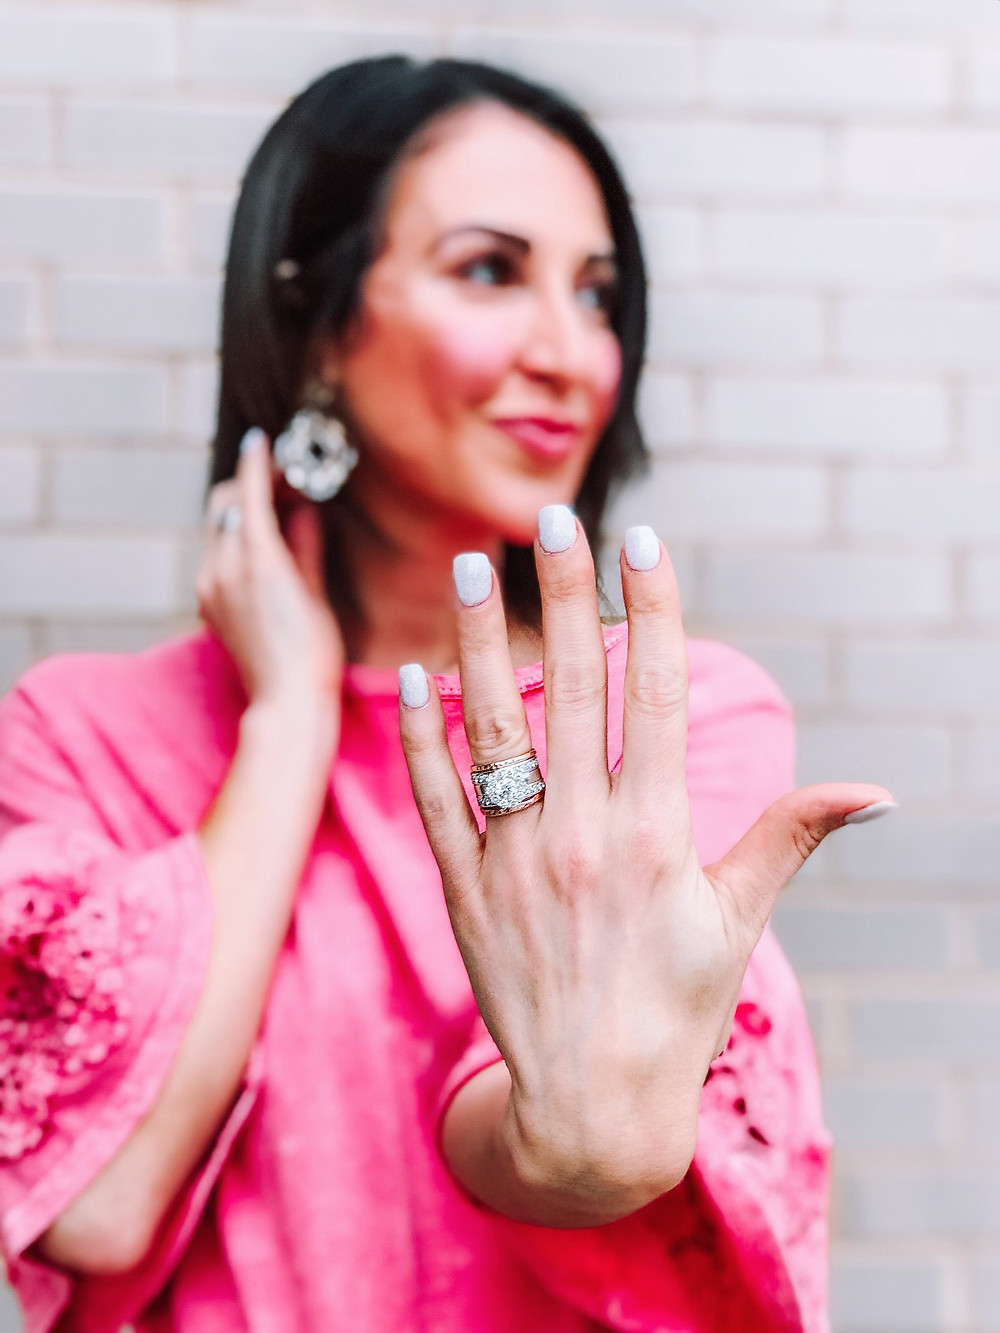 fine jewelry, Greenwood jewelry, Greenwood jeweler, southside jewelry, bridal ring, engagement ring, custom designed jewelry, fashion jewelry, watches, Indianapolis jewelry